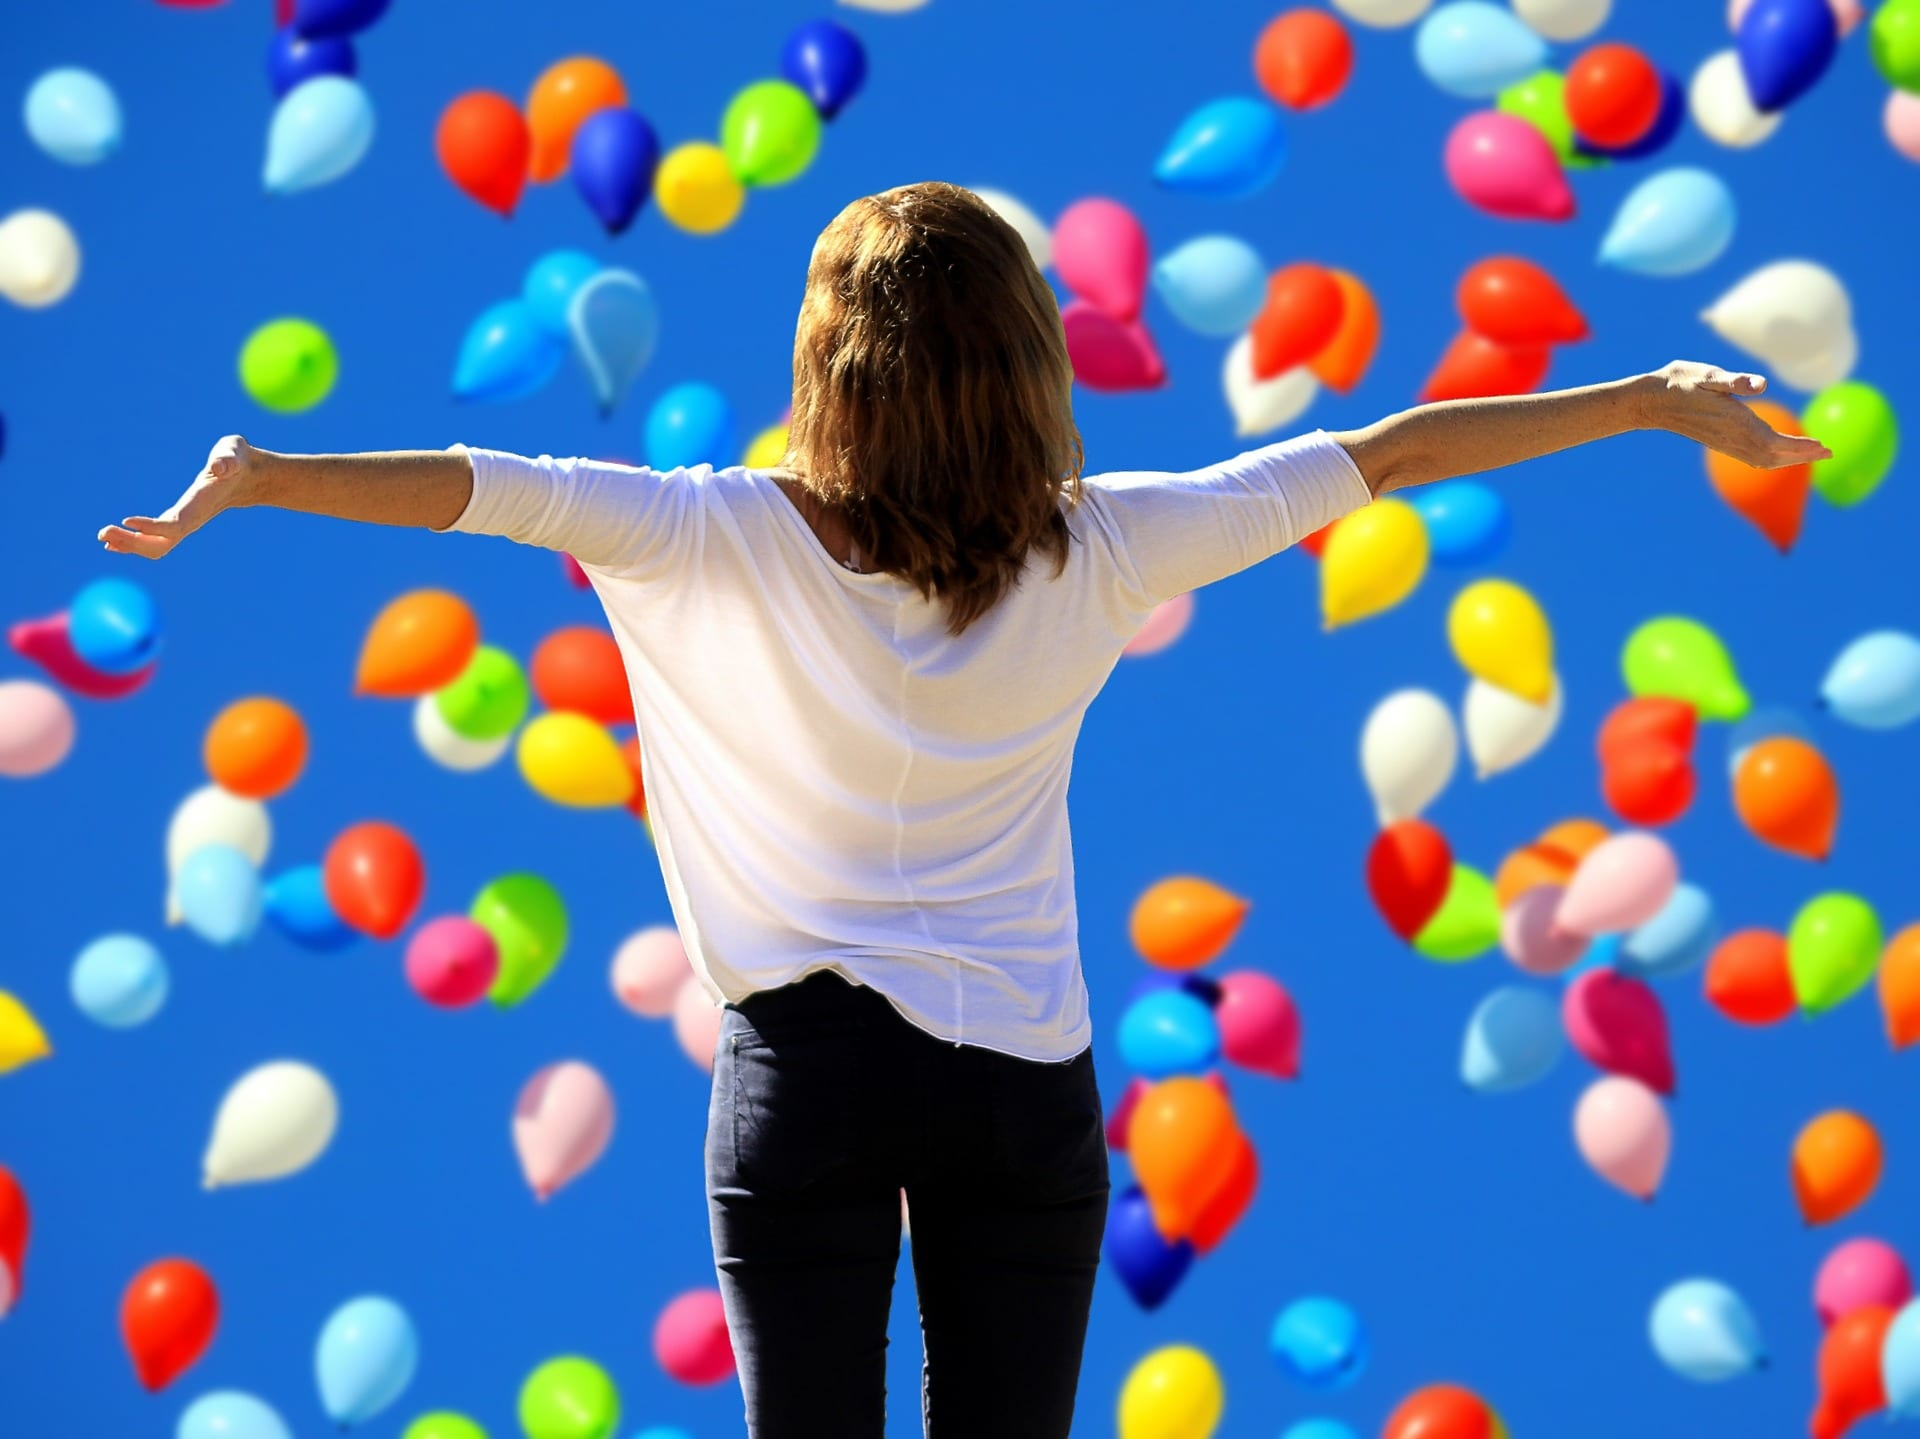 A woman triumphantly facing balloons as they fly through the sky.